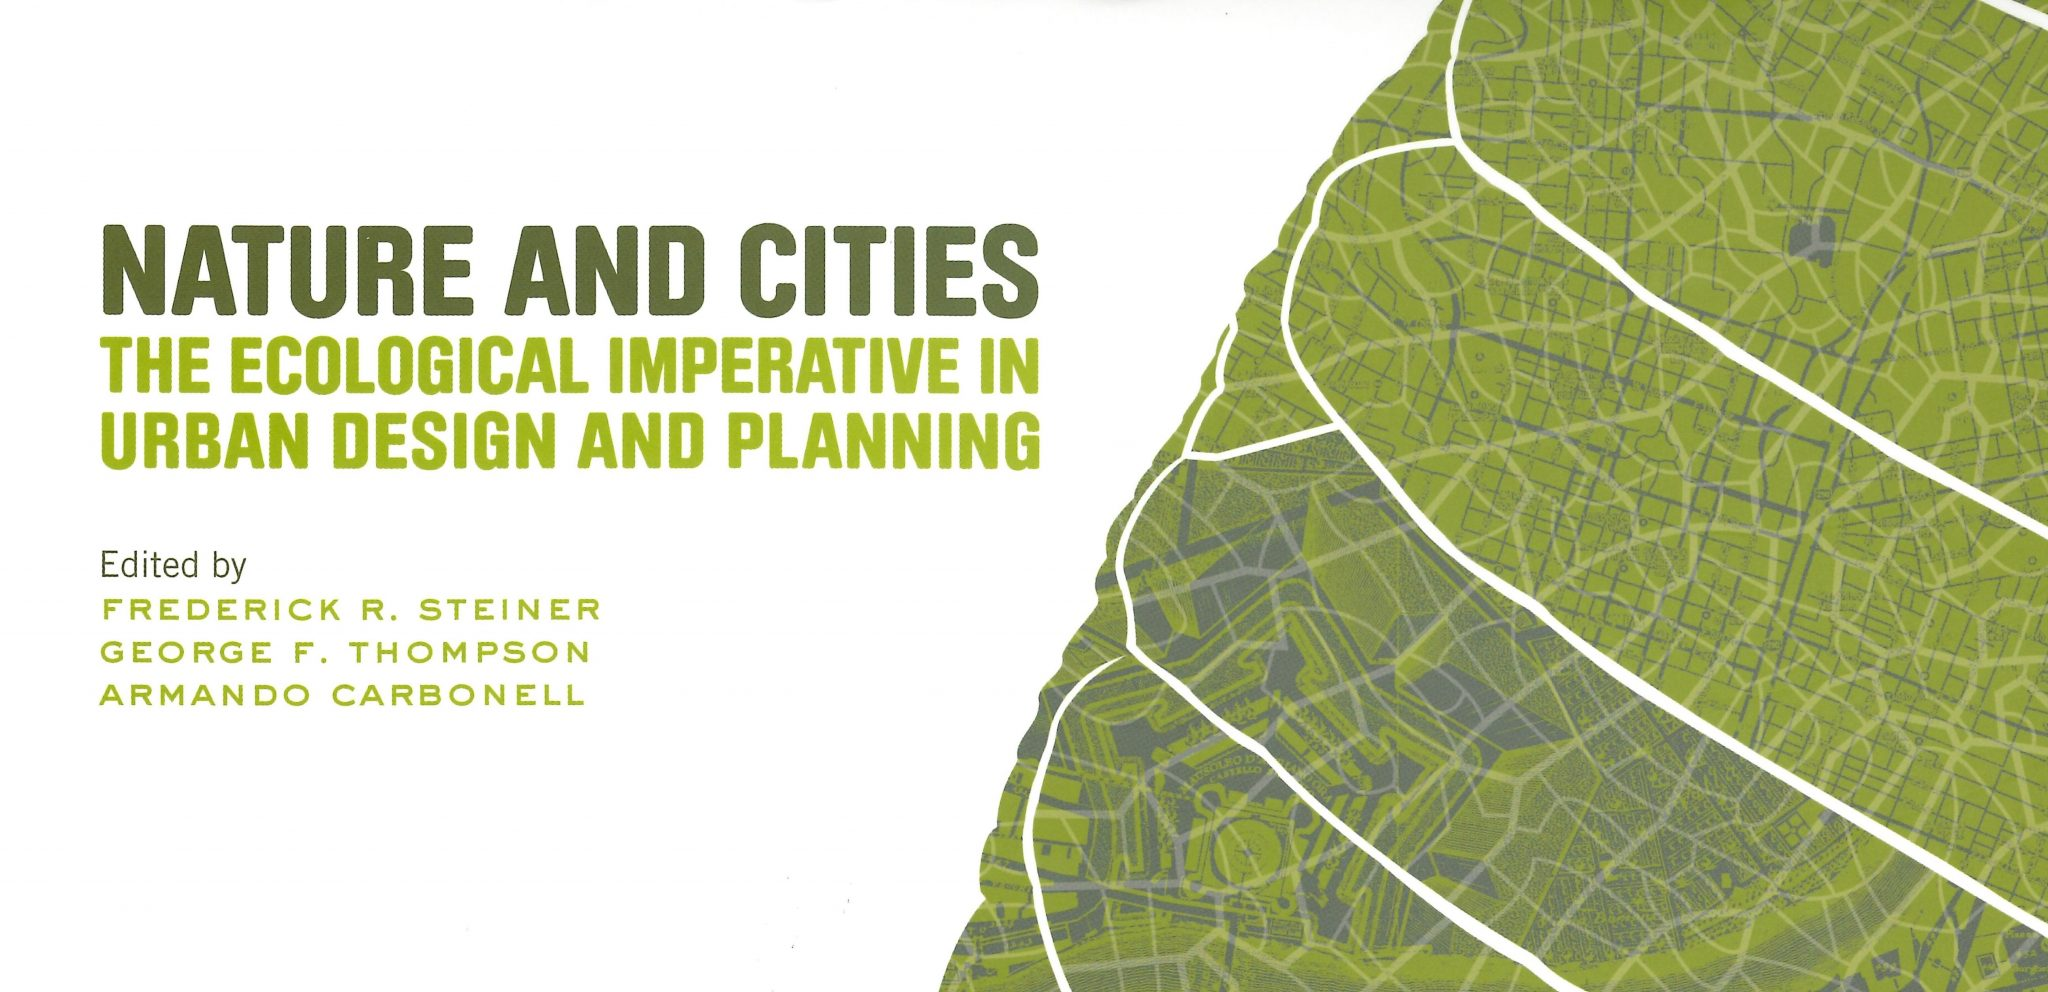 Designing Urban Nature: The Domain of Ecologically Informed Planners or  Landscape Architects? – The Nature of Cities